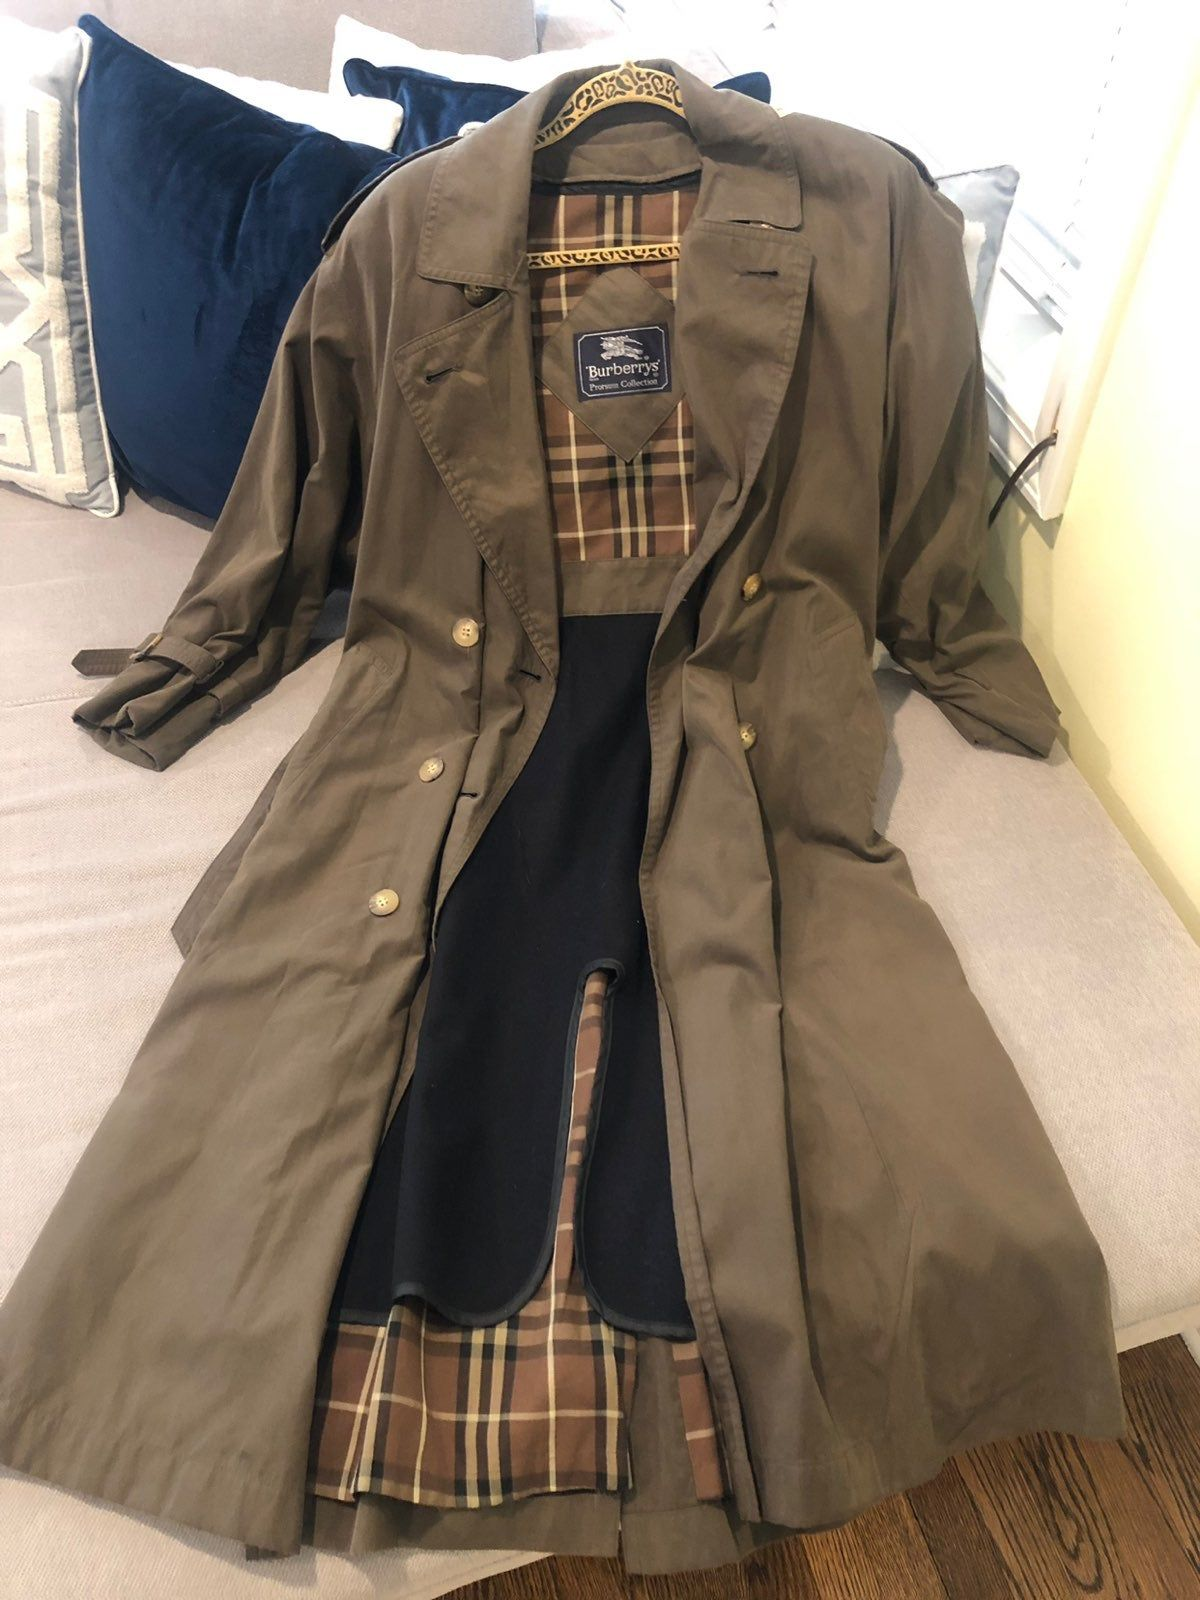 Vintage Burberry Trench Coat Petite Size 6 But Runs On The Bigger Side One Sleeve Cuff Missing Burberry Trench Coat Burberry Coat [ 1600 x 1200 Pixel ]